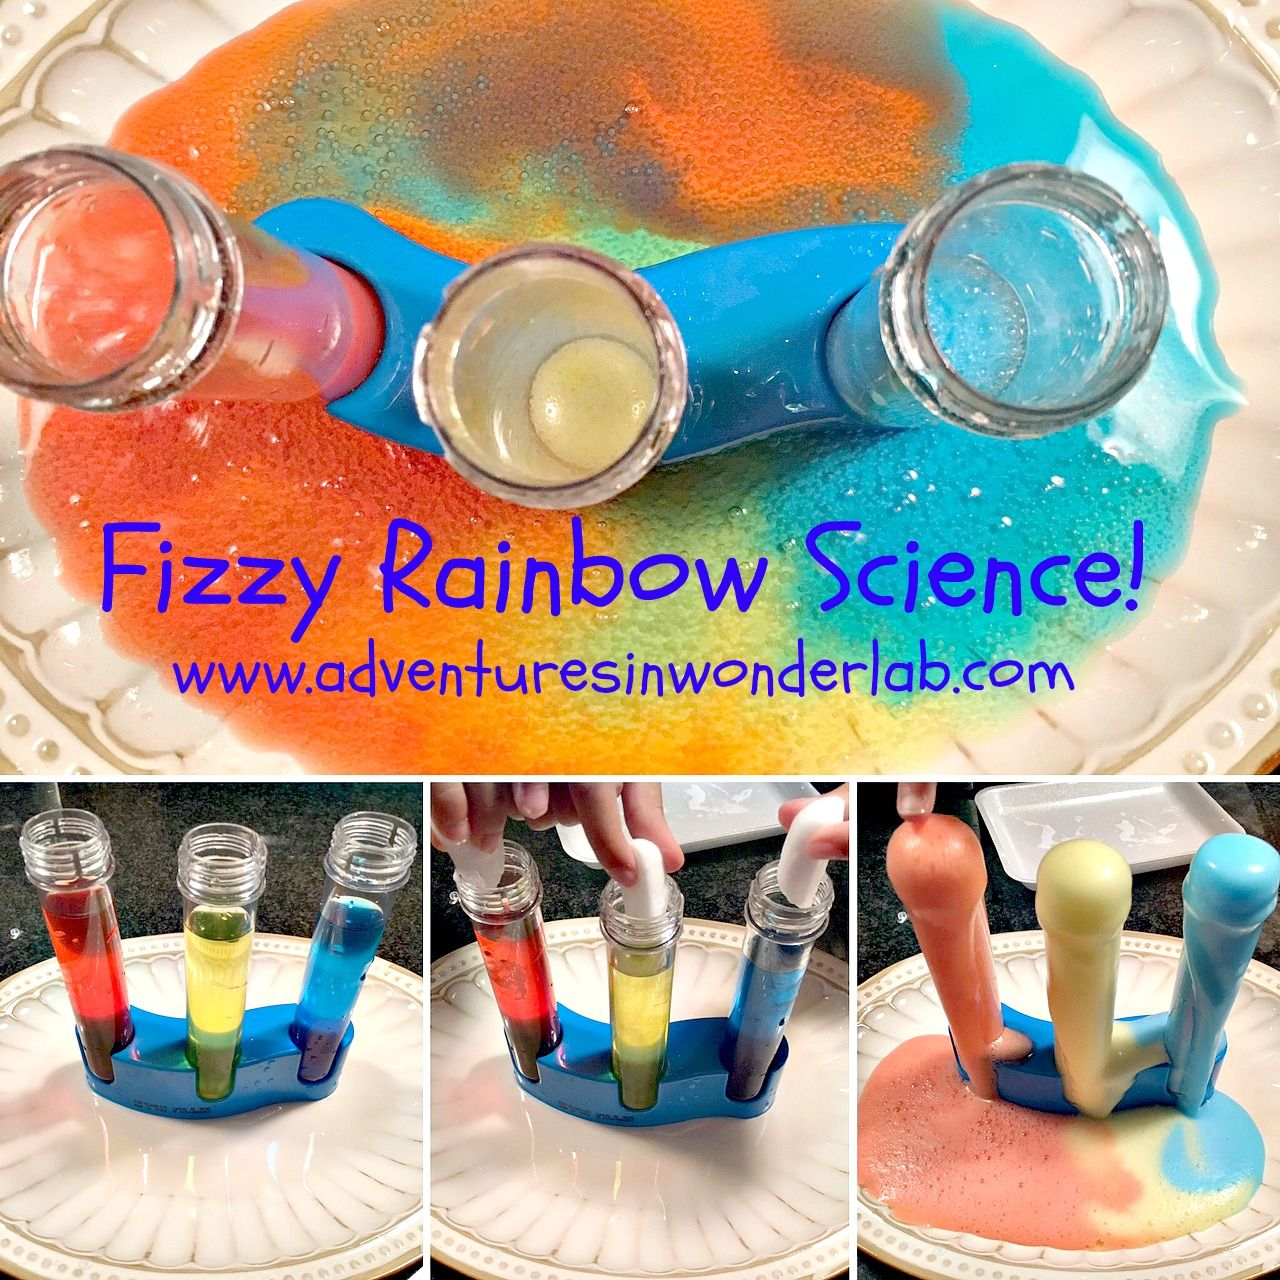 3 Rainbow Science Experiments Wp P7pfcl 5n